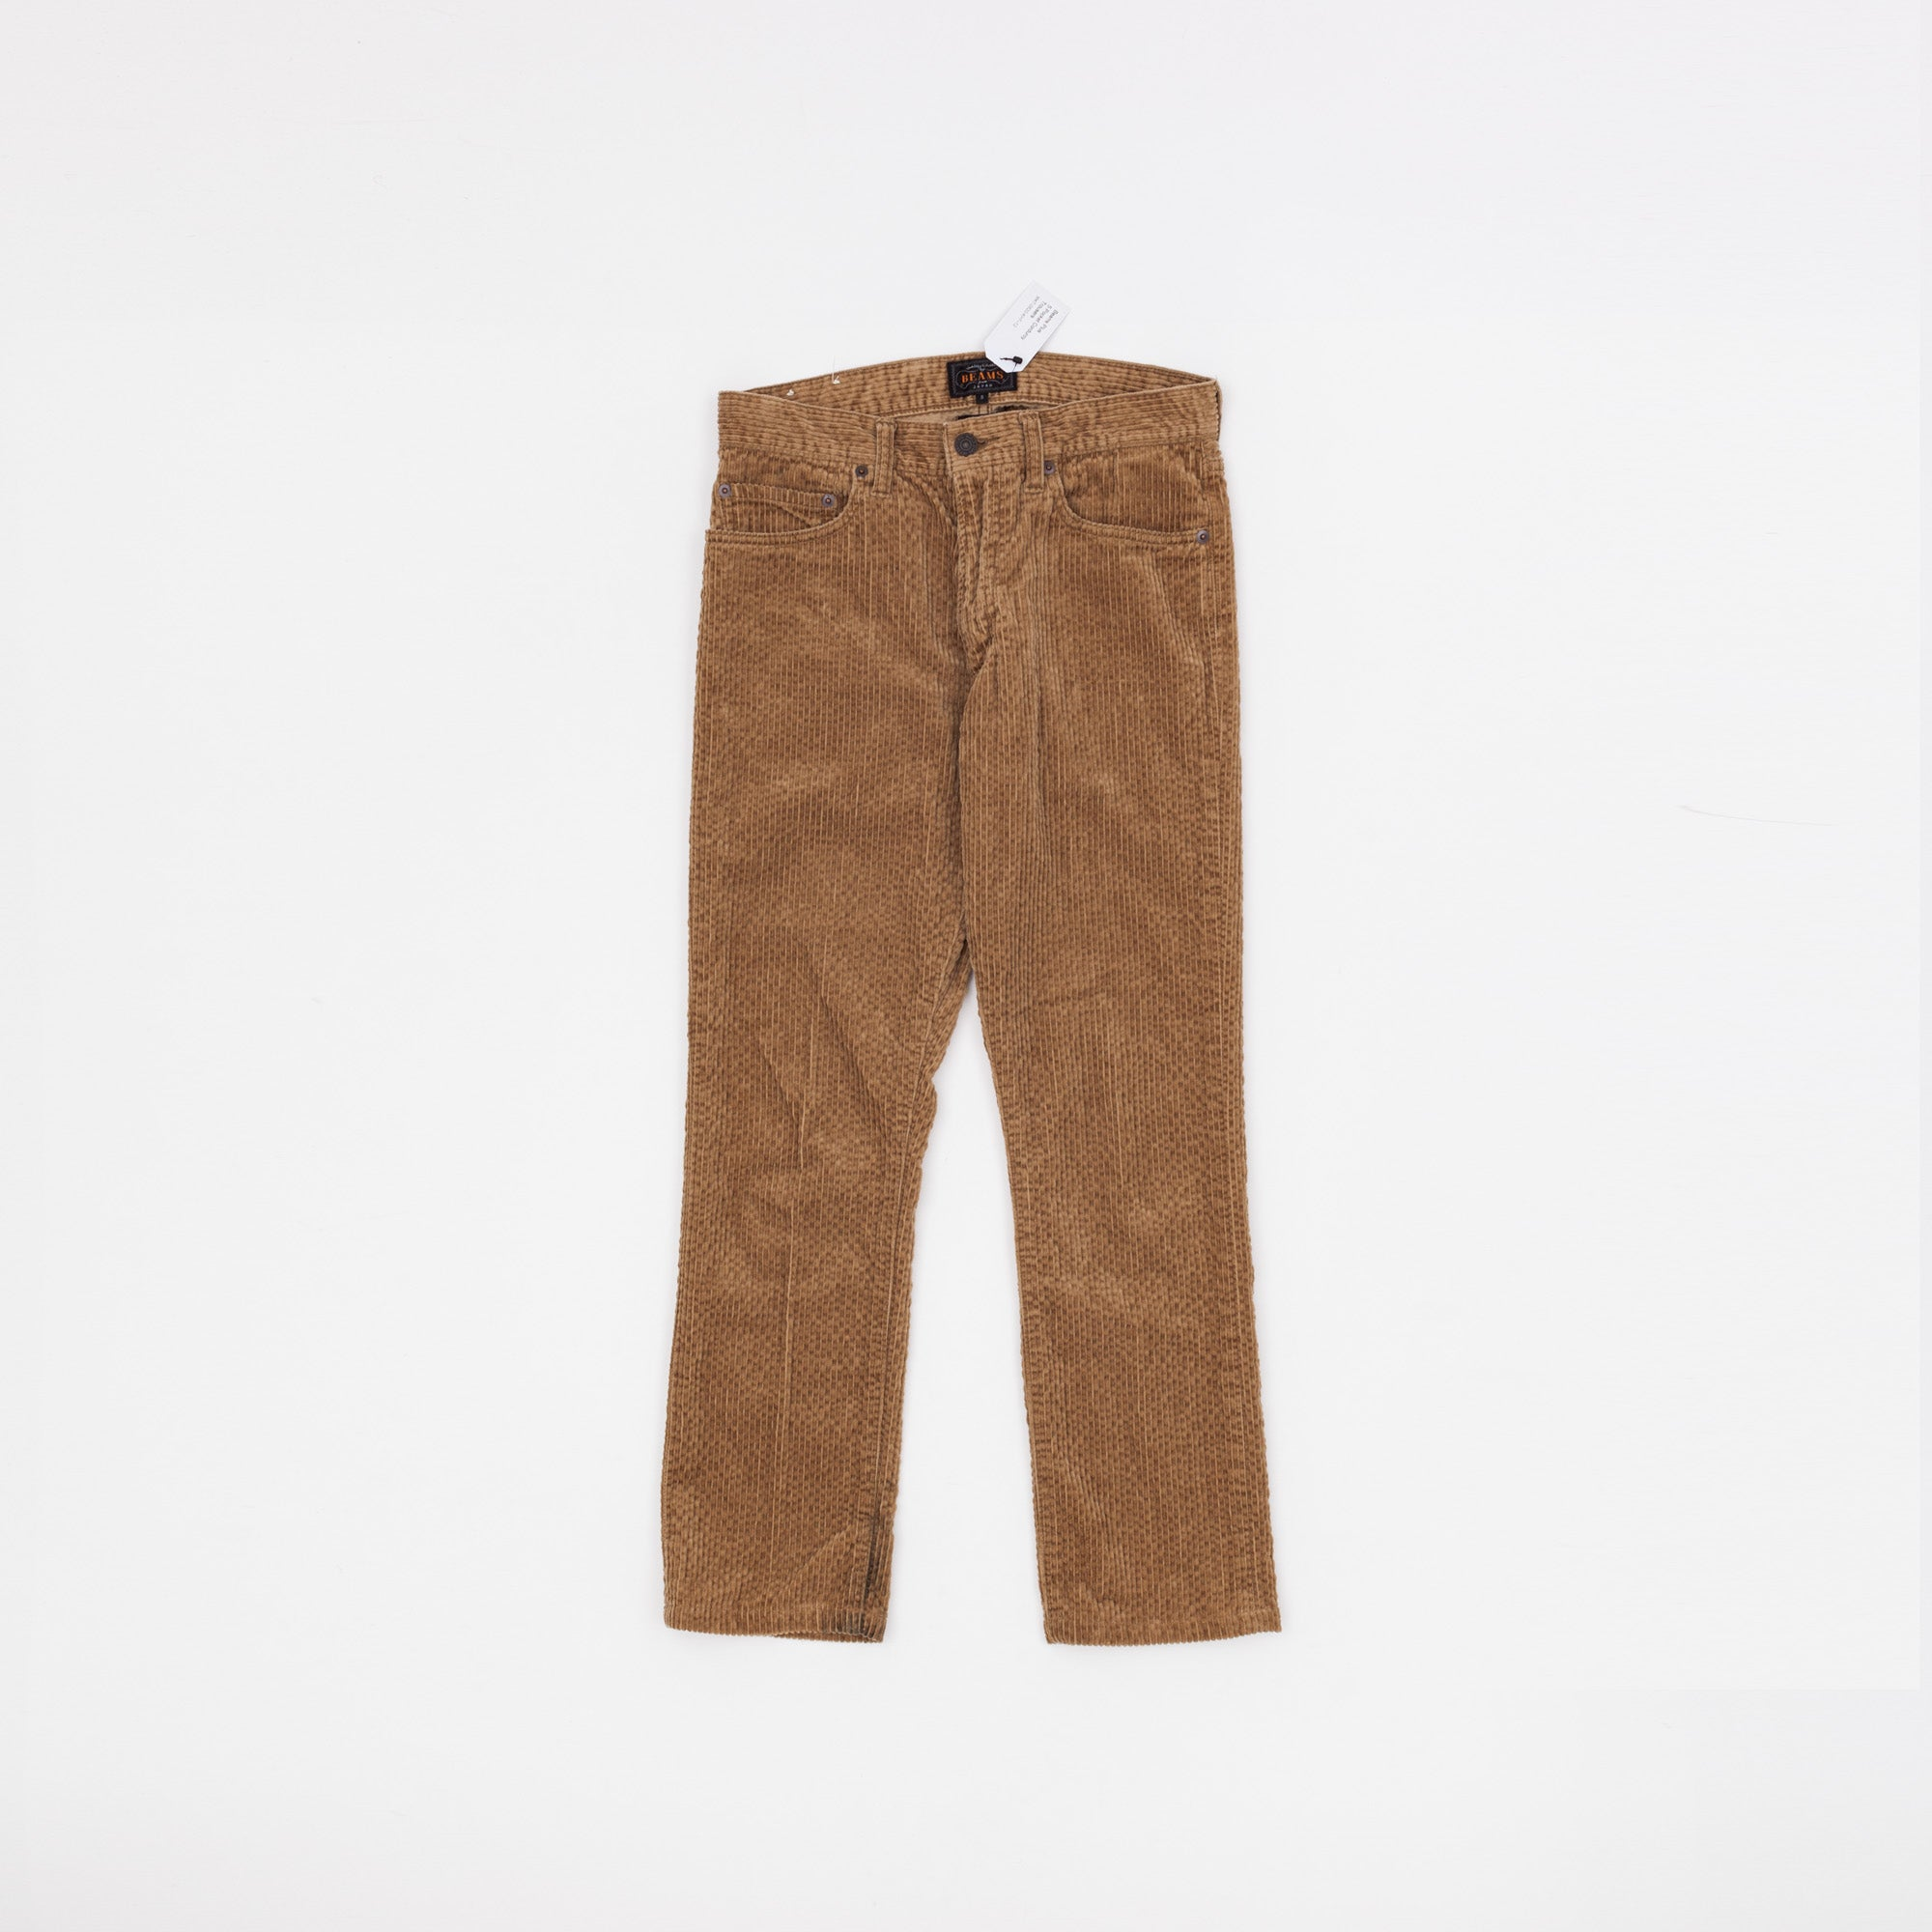 5 Pocket Corduroy Trousers